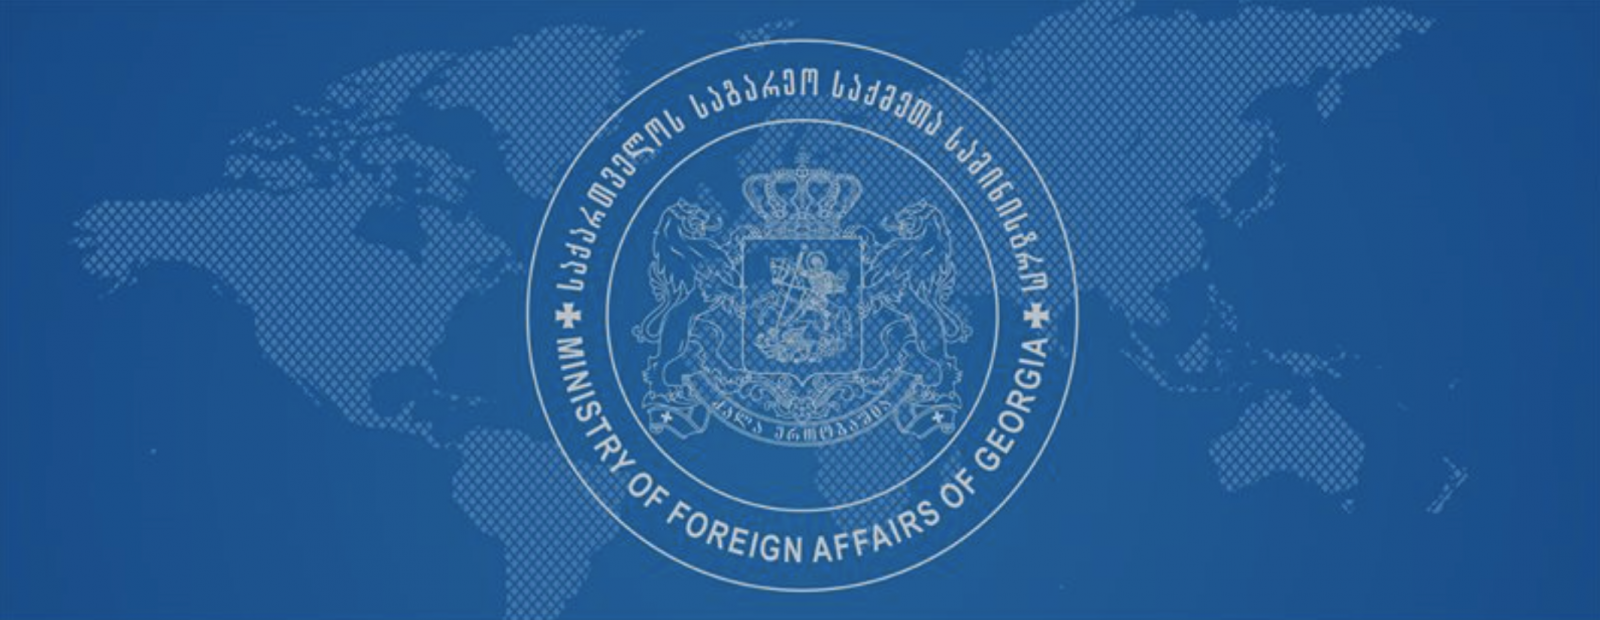 The International Community's Active Efforts Will Have Its Effect on Ensuring Long-Term Peace – MFA